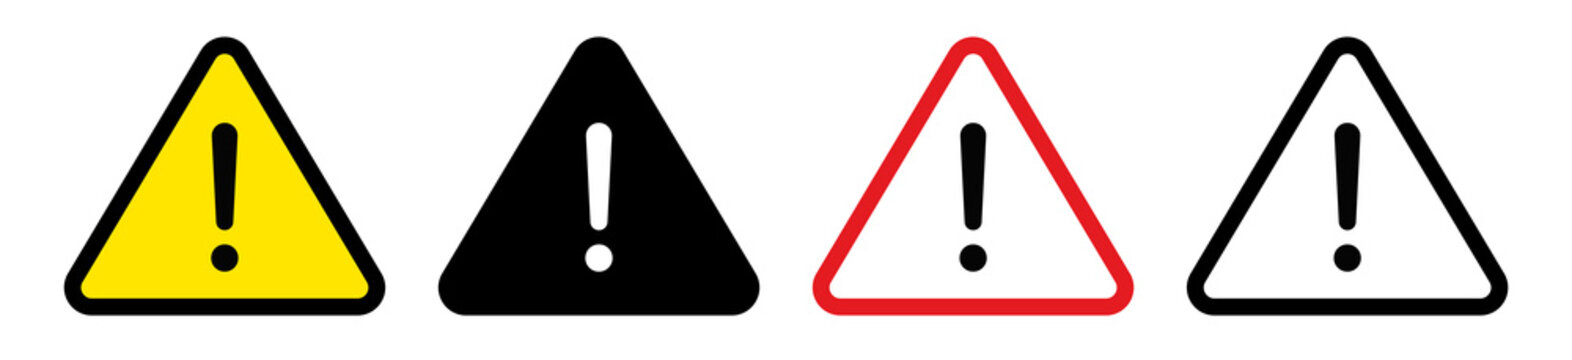 Exclamation mark icon collection.Danger warning set.Triangular warning symbols with Exclamation mark.Vector